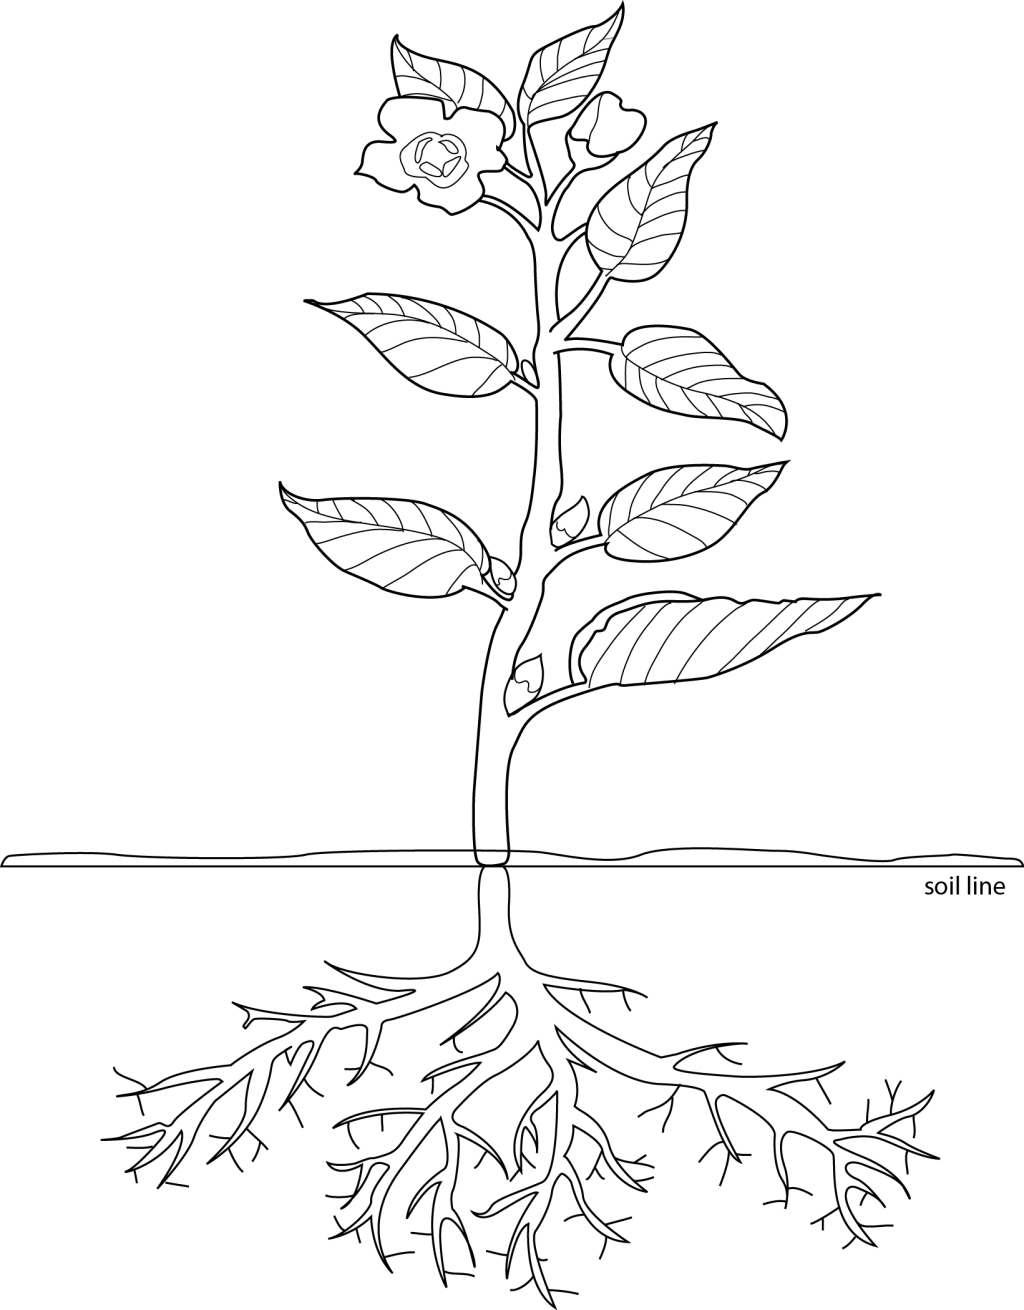 Flower With Roots Drawing